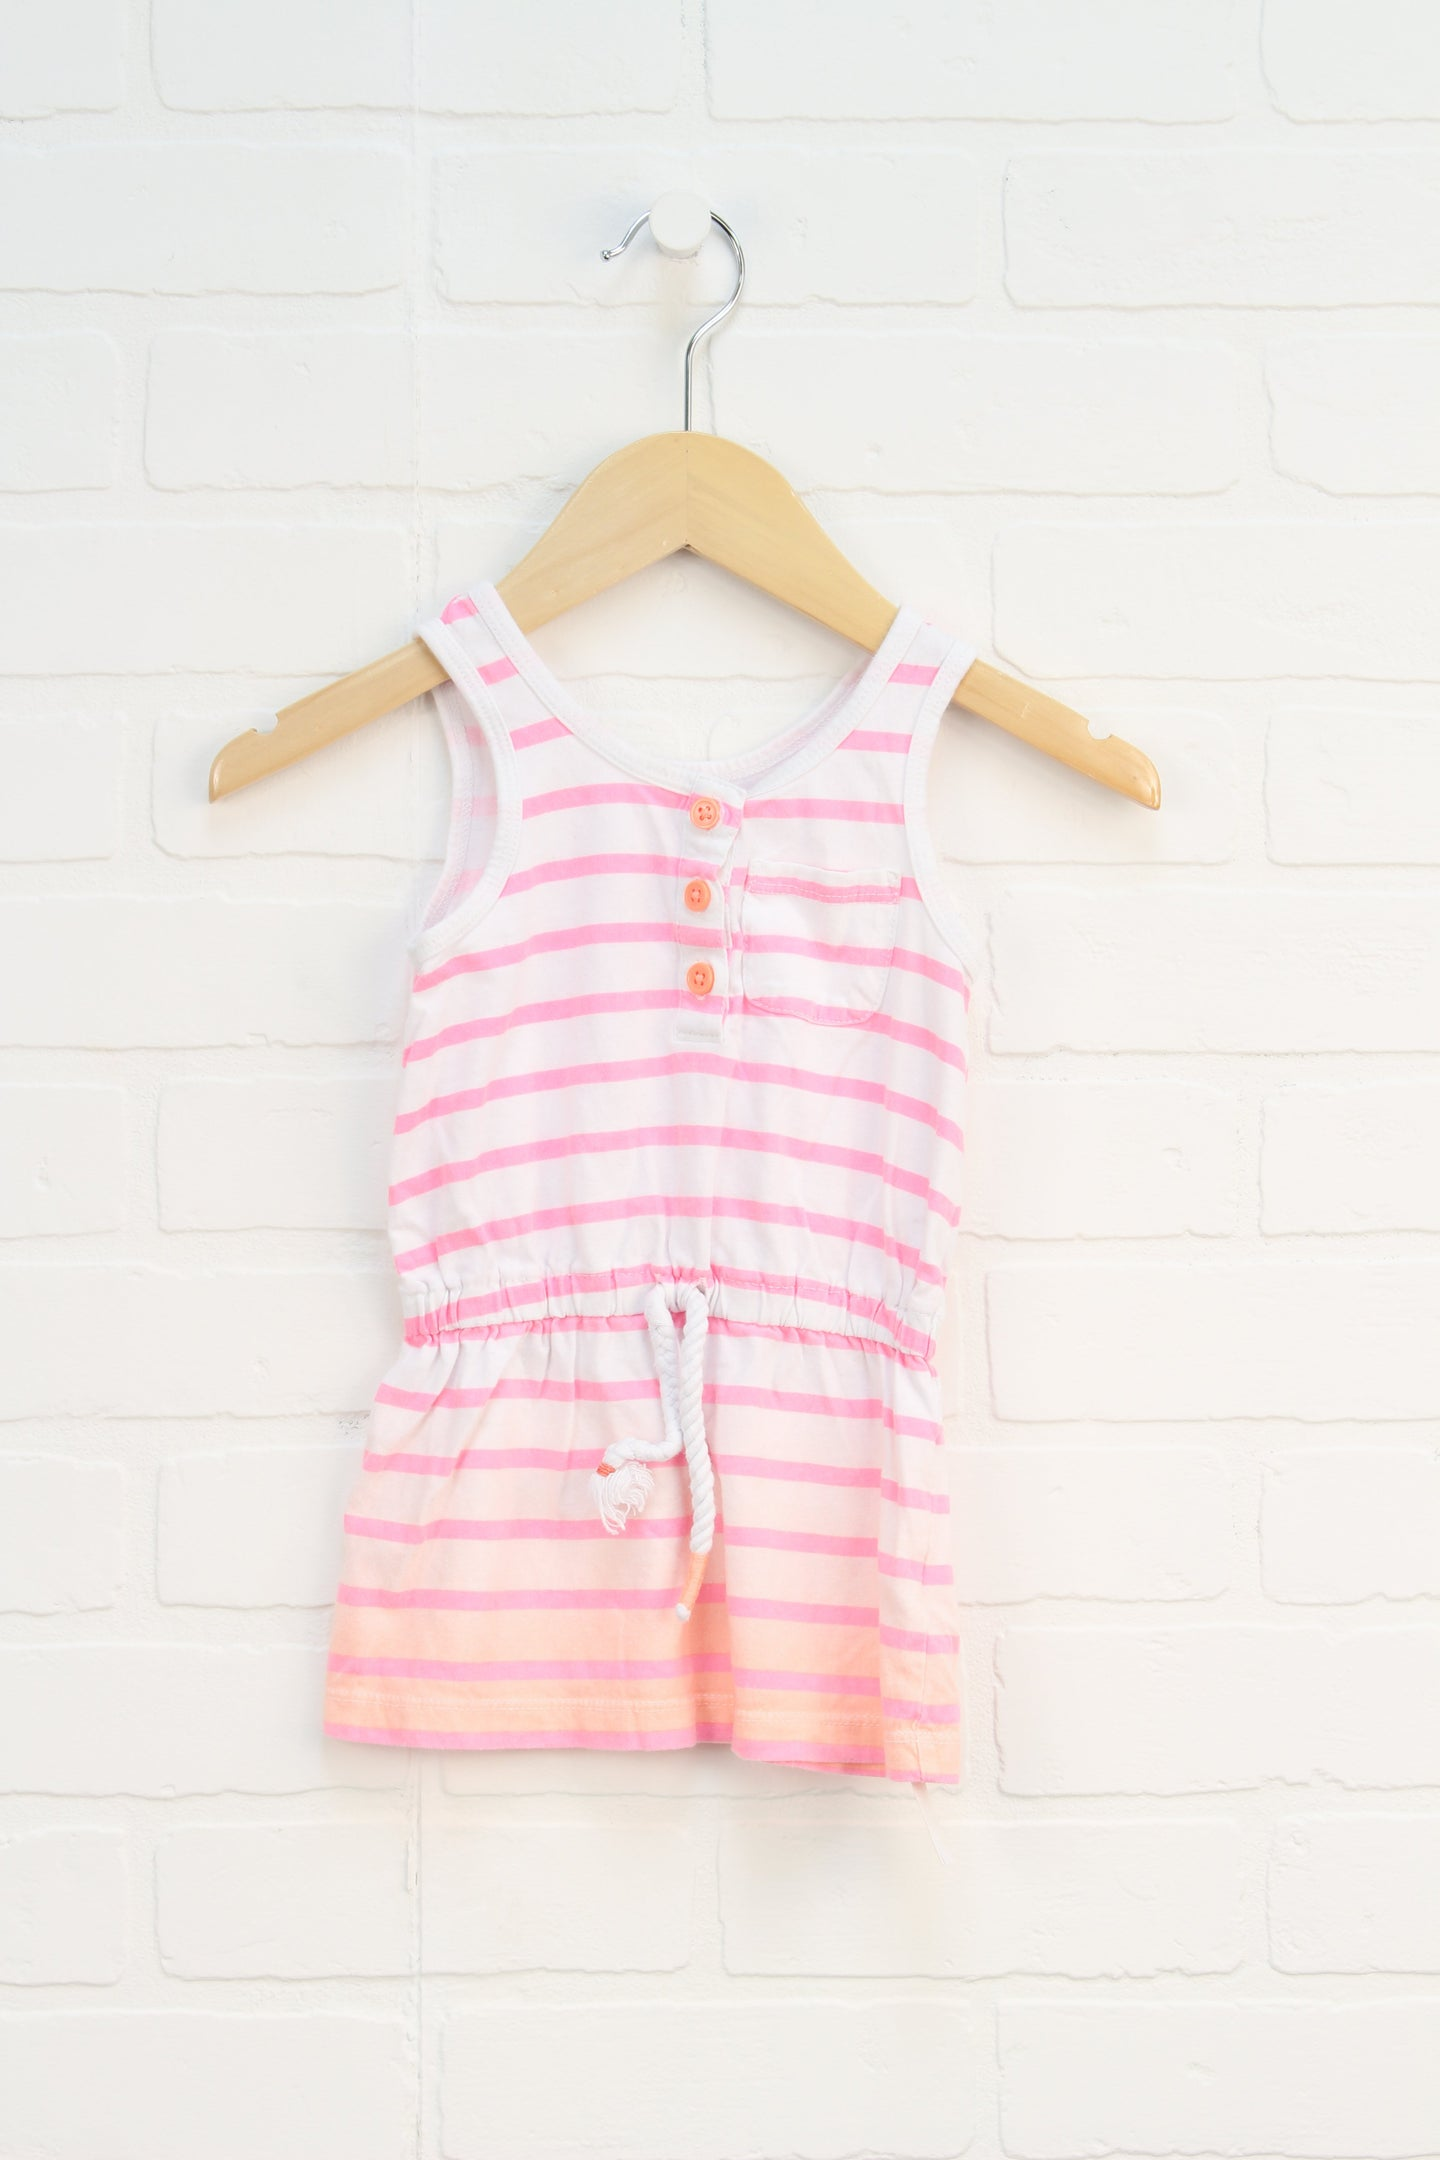 White + Fluorescent Pink Sundress (Size 2T)